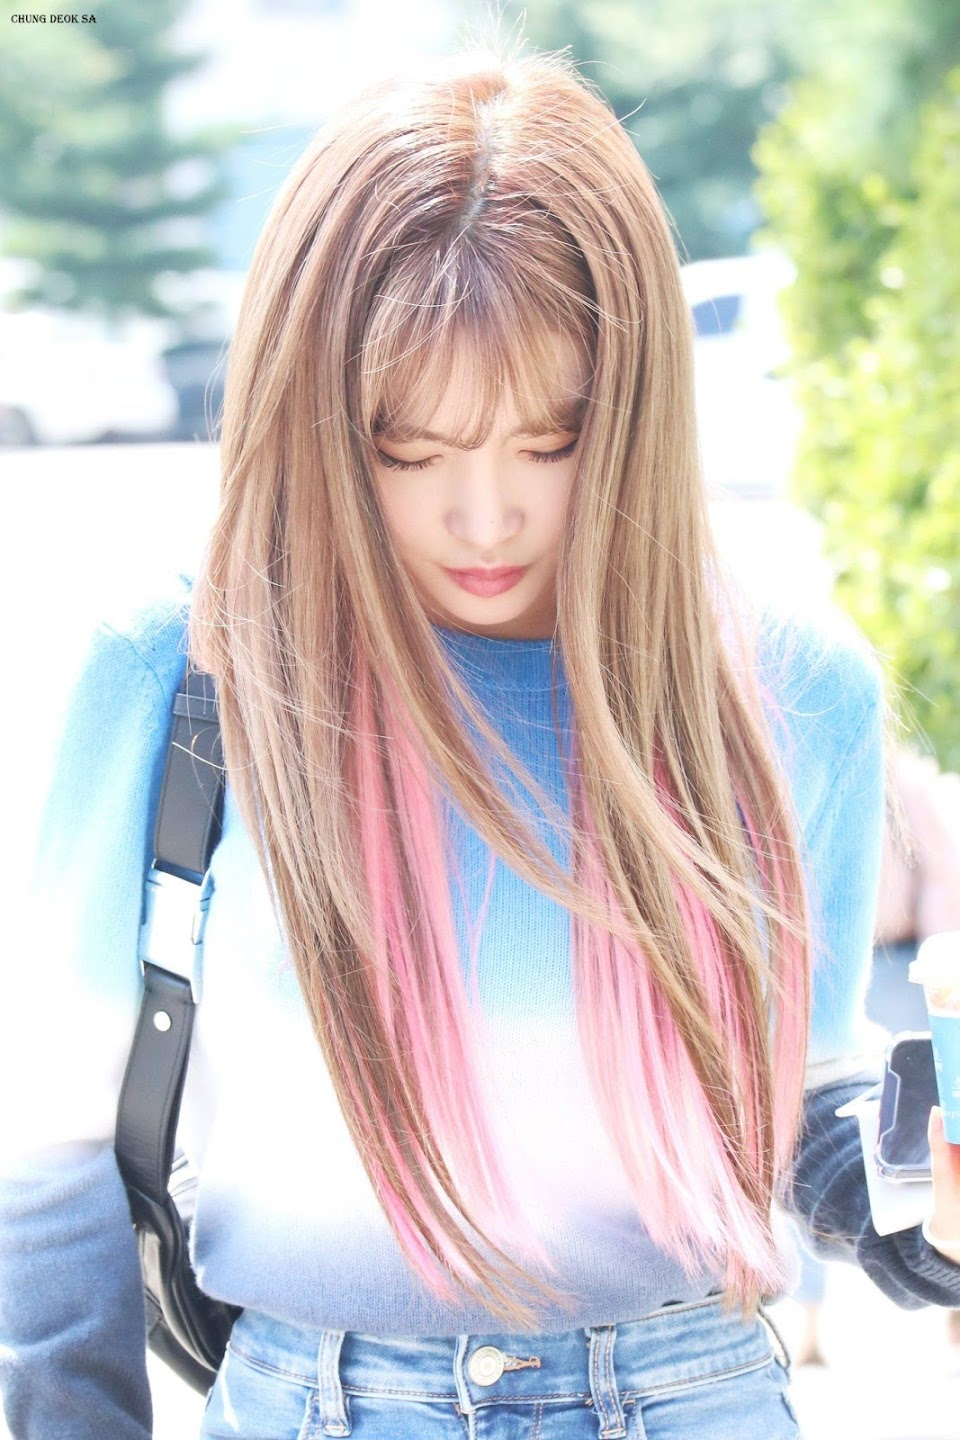 blackpink hair 49